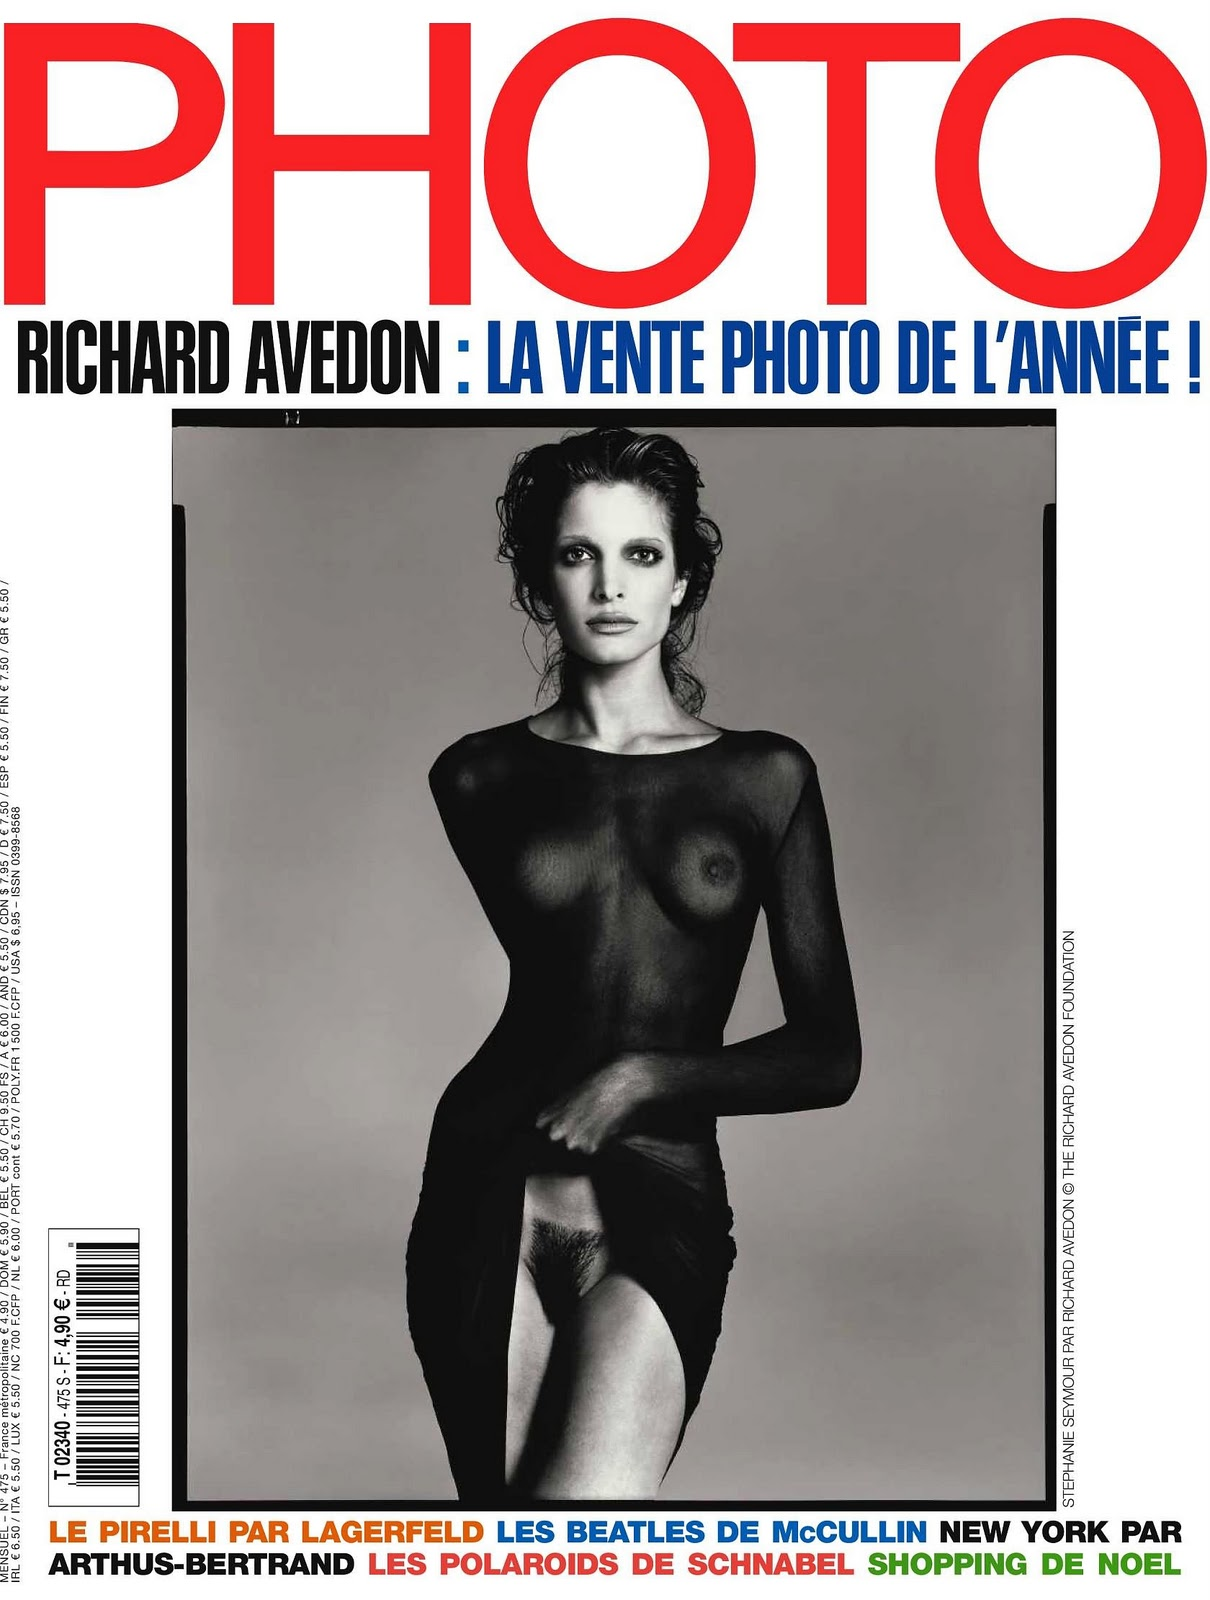 73379 tduid300116 by mah0ne Stephanie Seymour NUDE Photo Magazine France December 2010 001 122 162lo Charlotte Herbert and Friends Nude Front Pictures. 10 Jan 2011 at 19:01